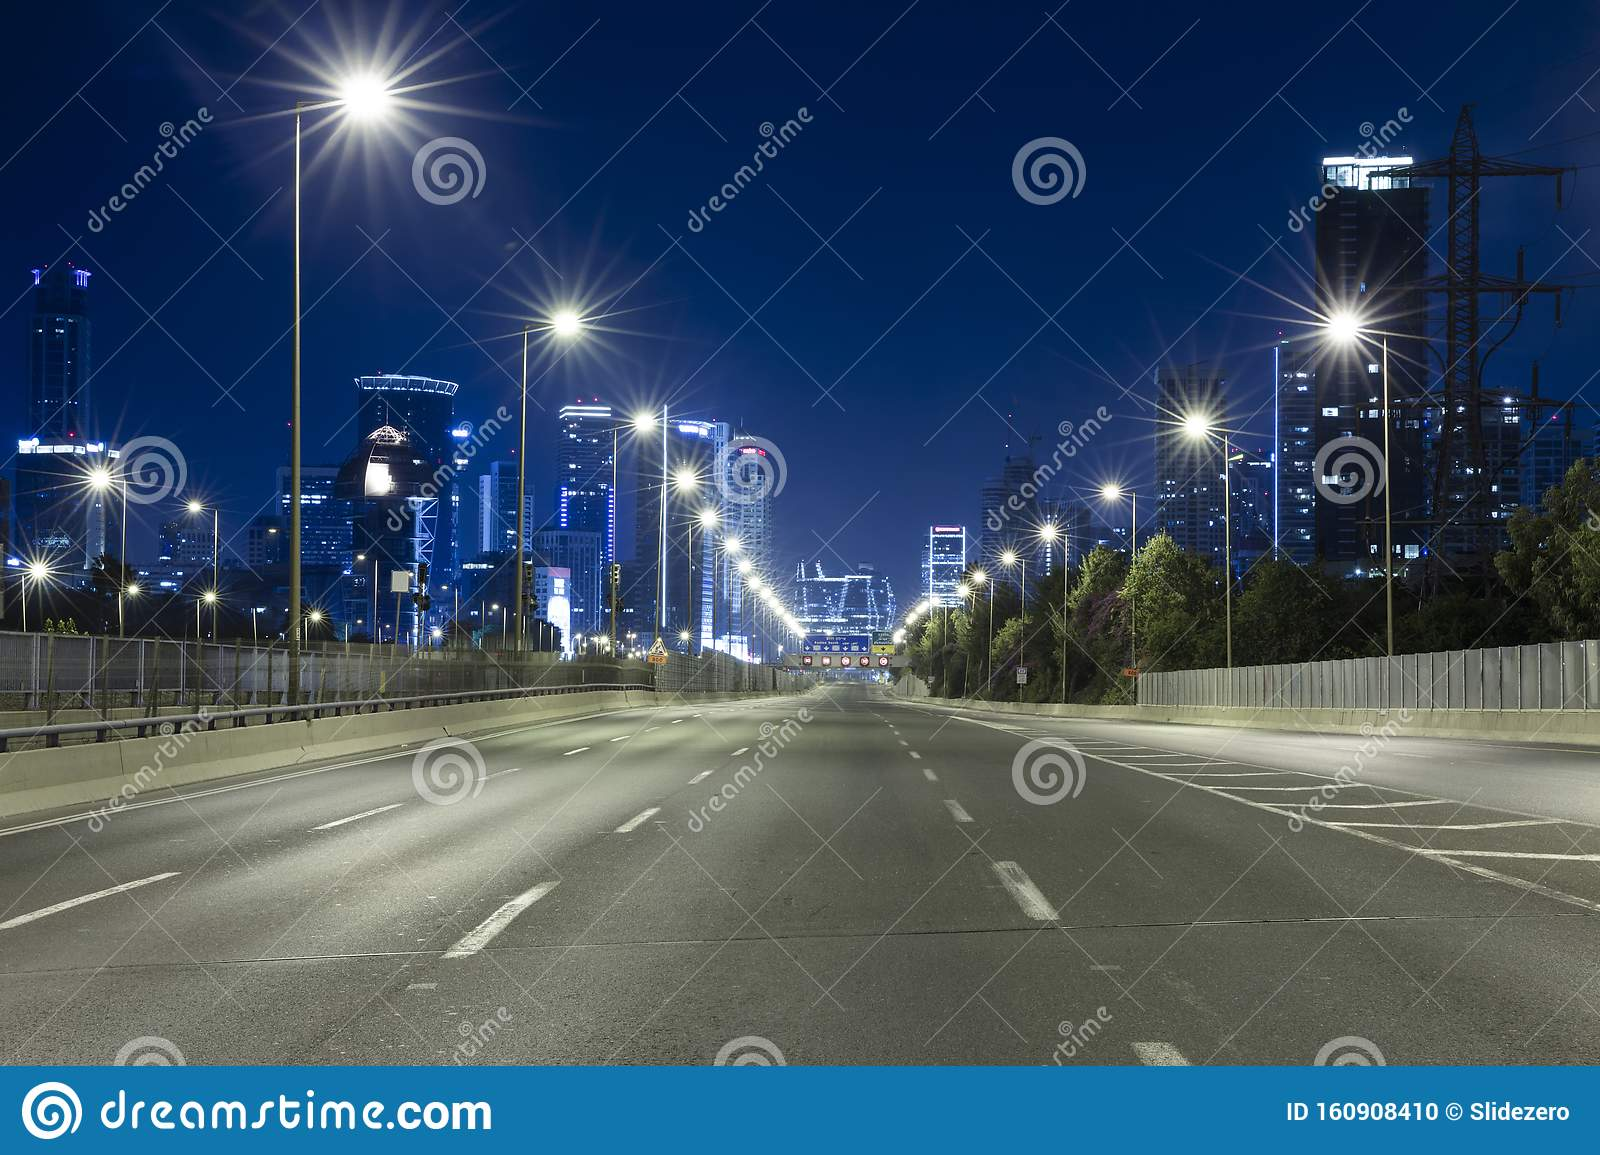 250 086 Night Road Photos Free Royalty Free Stock Photos From Dreamstime